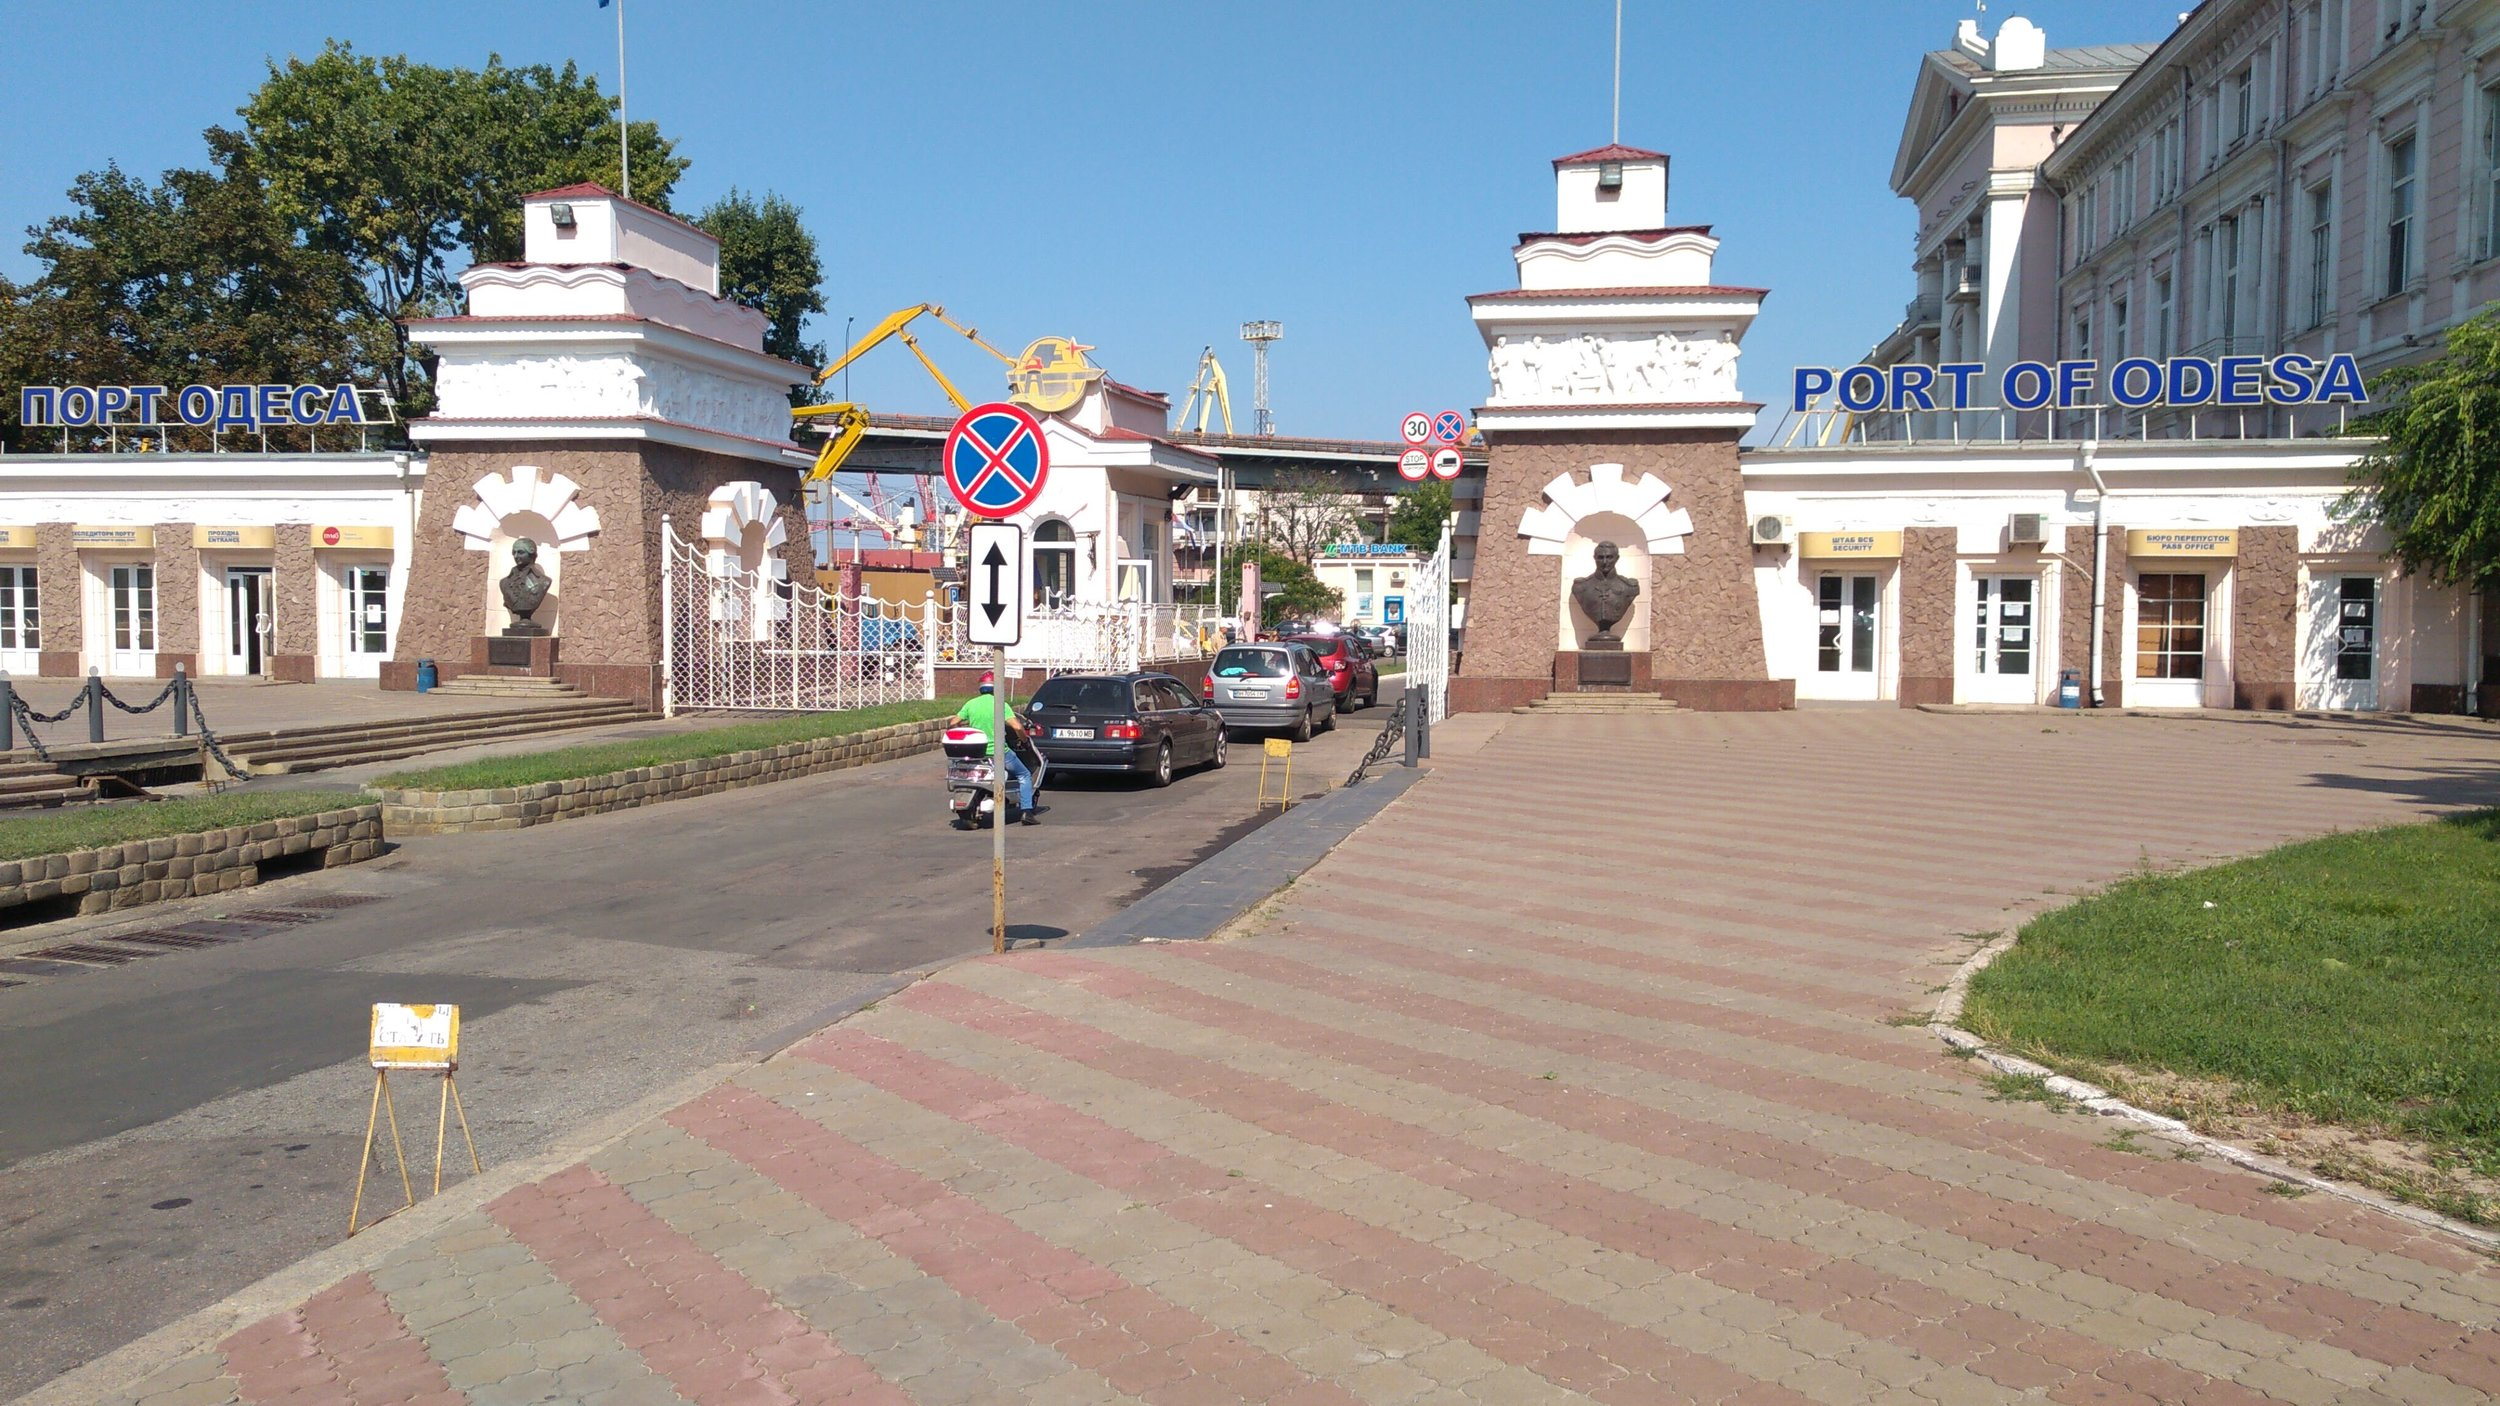 Entry to the privately run Port of Odessa